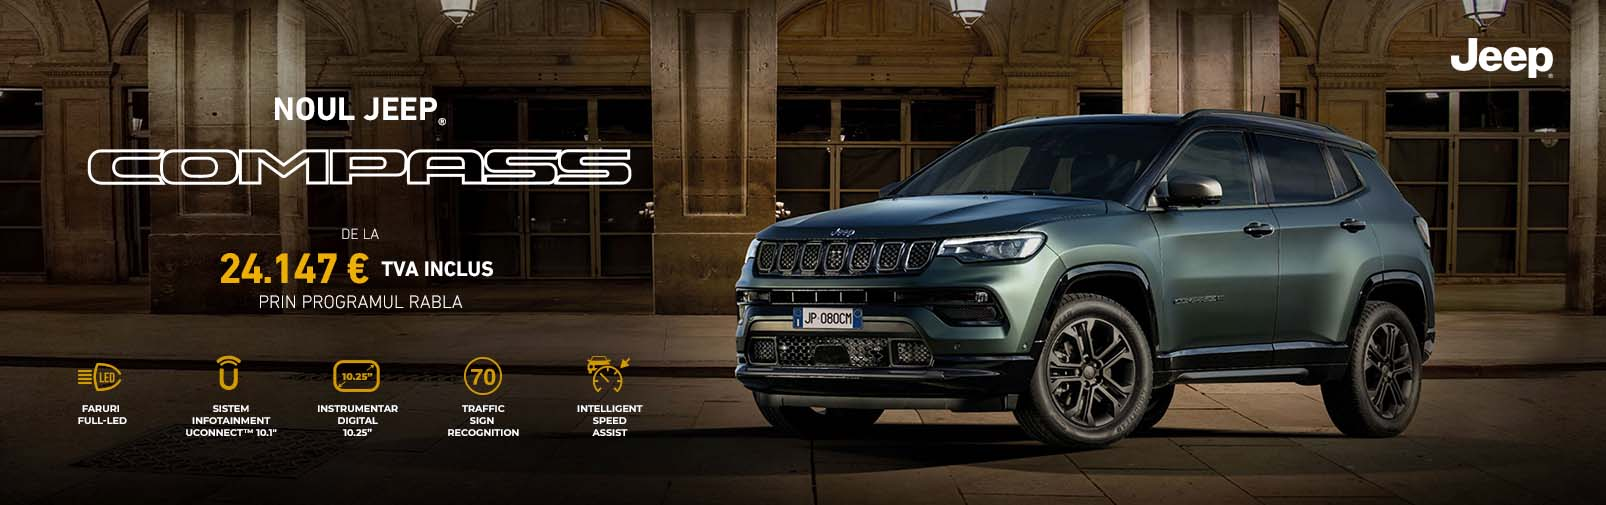 Jeep_new_Compass_septembrie-site-1606x505-1